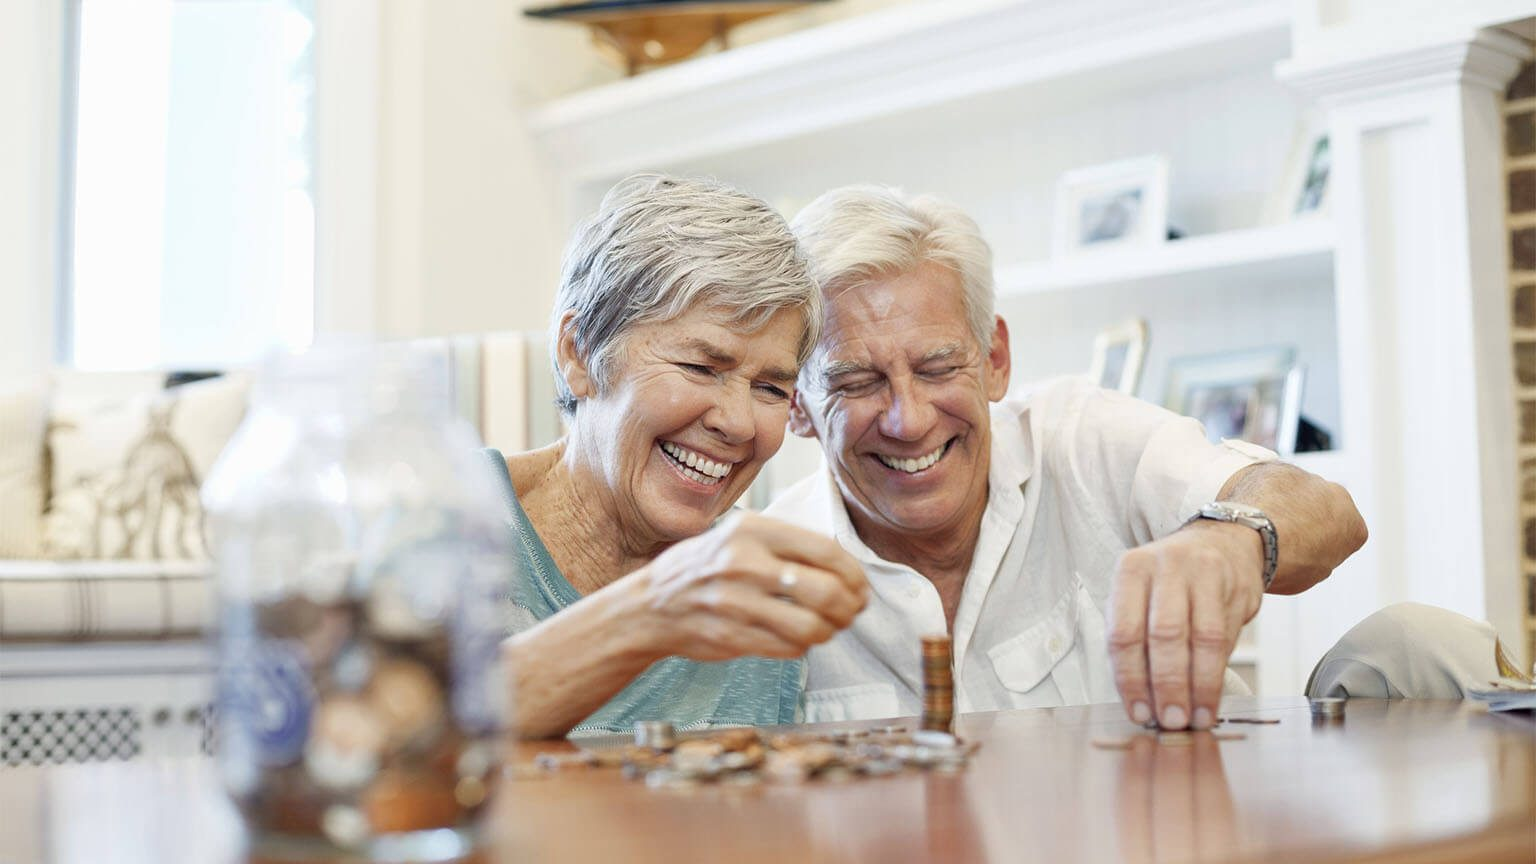 Senior couple counting coins at table